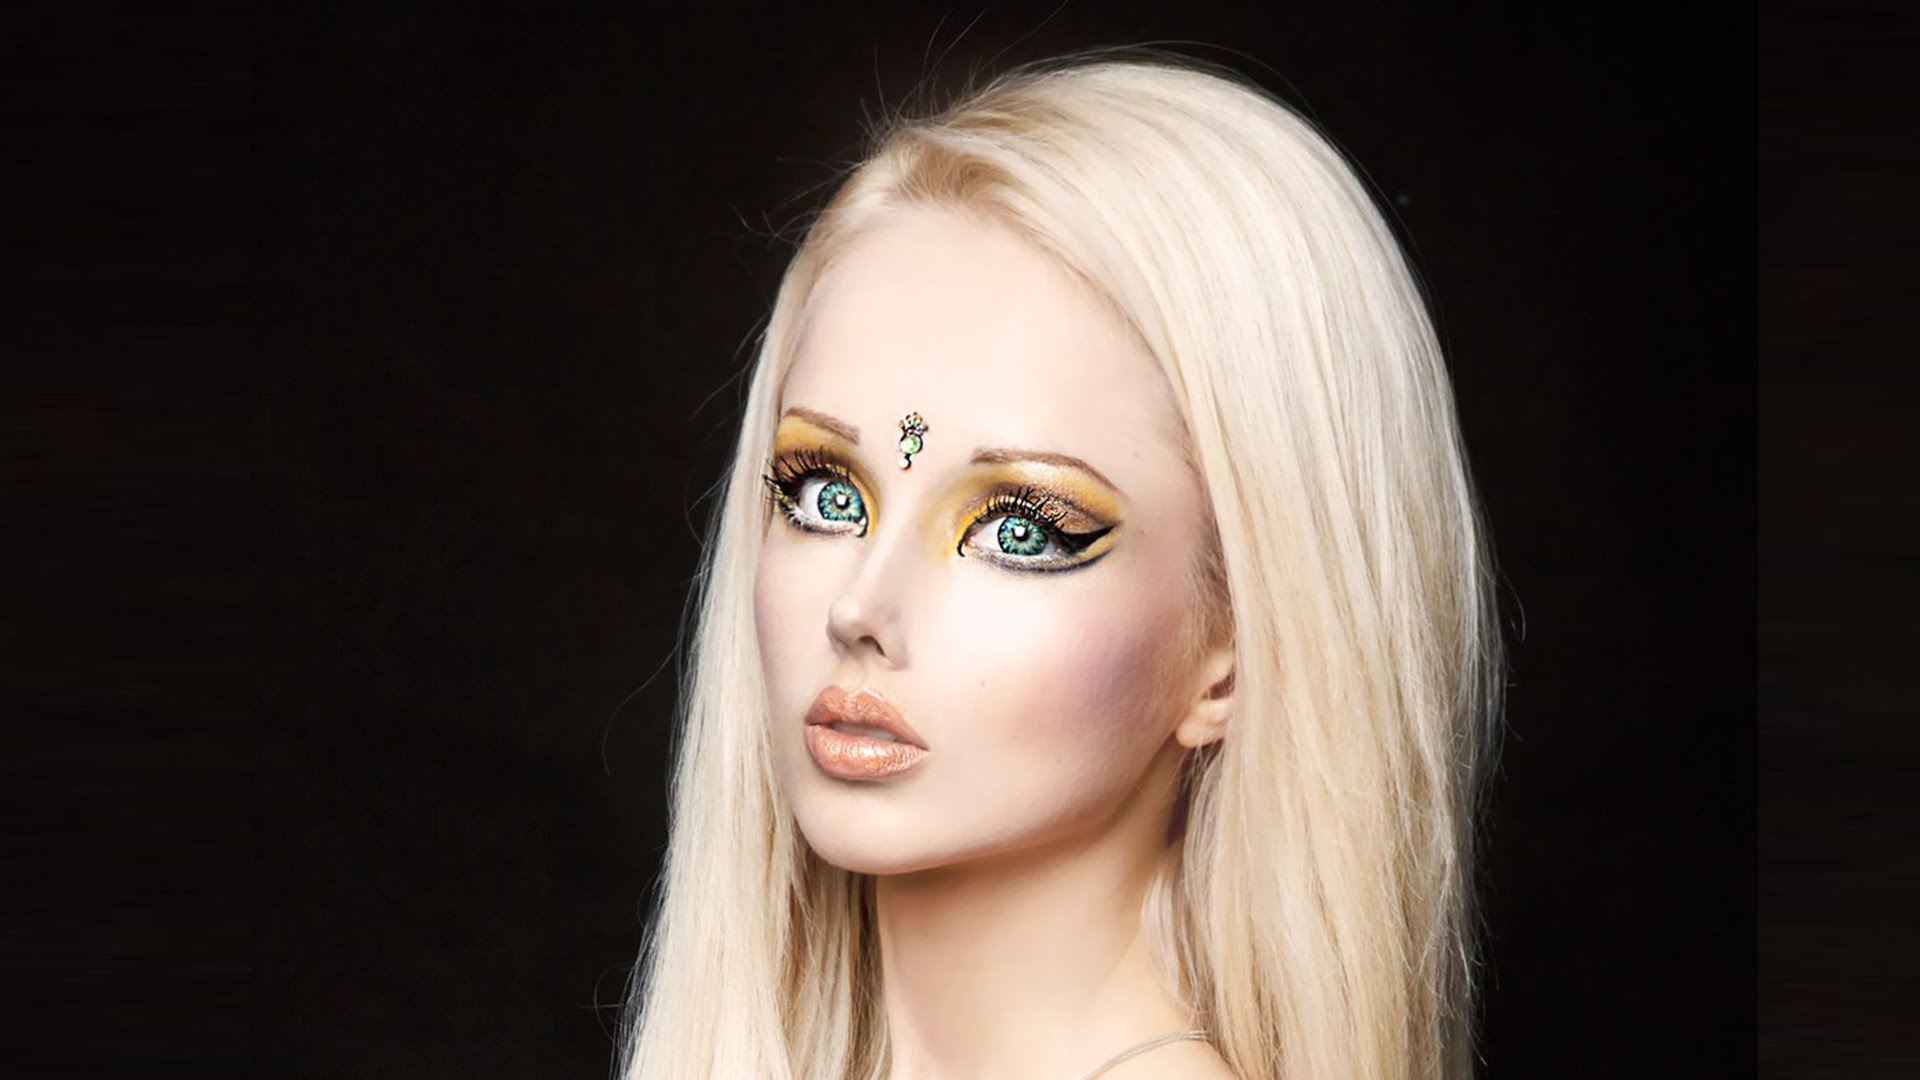 Valeriya Lukyanova – The Human Barbie